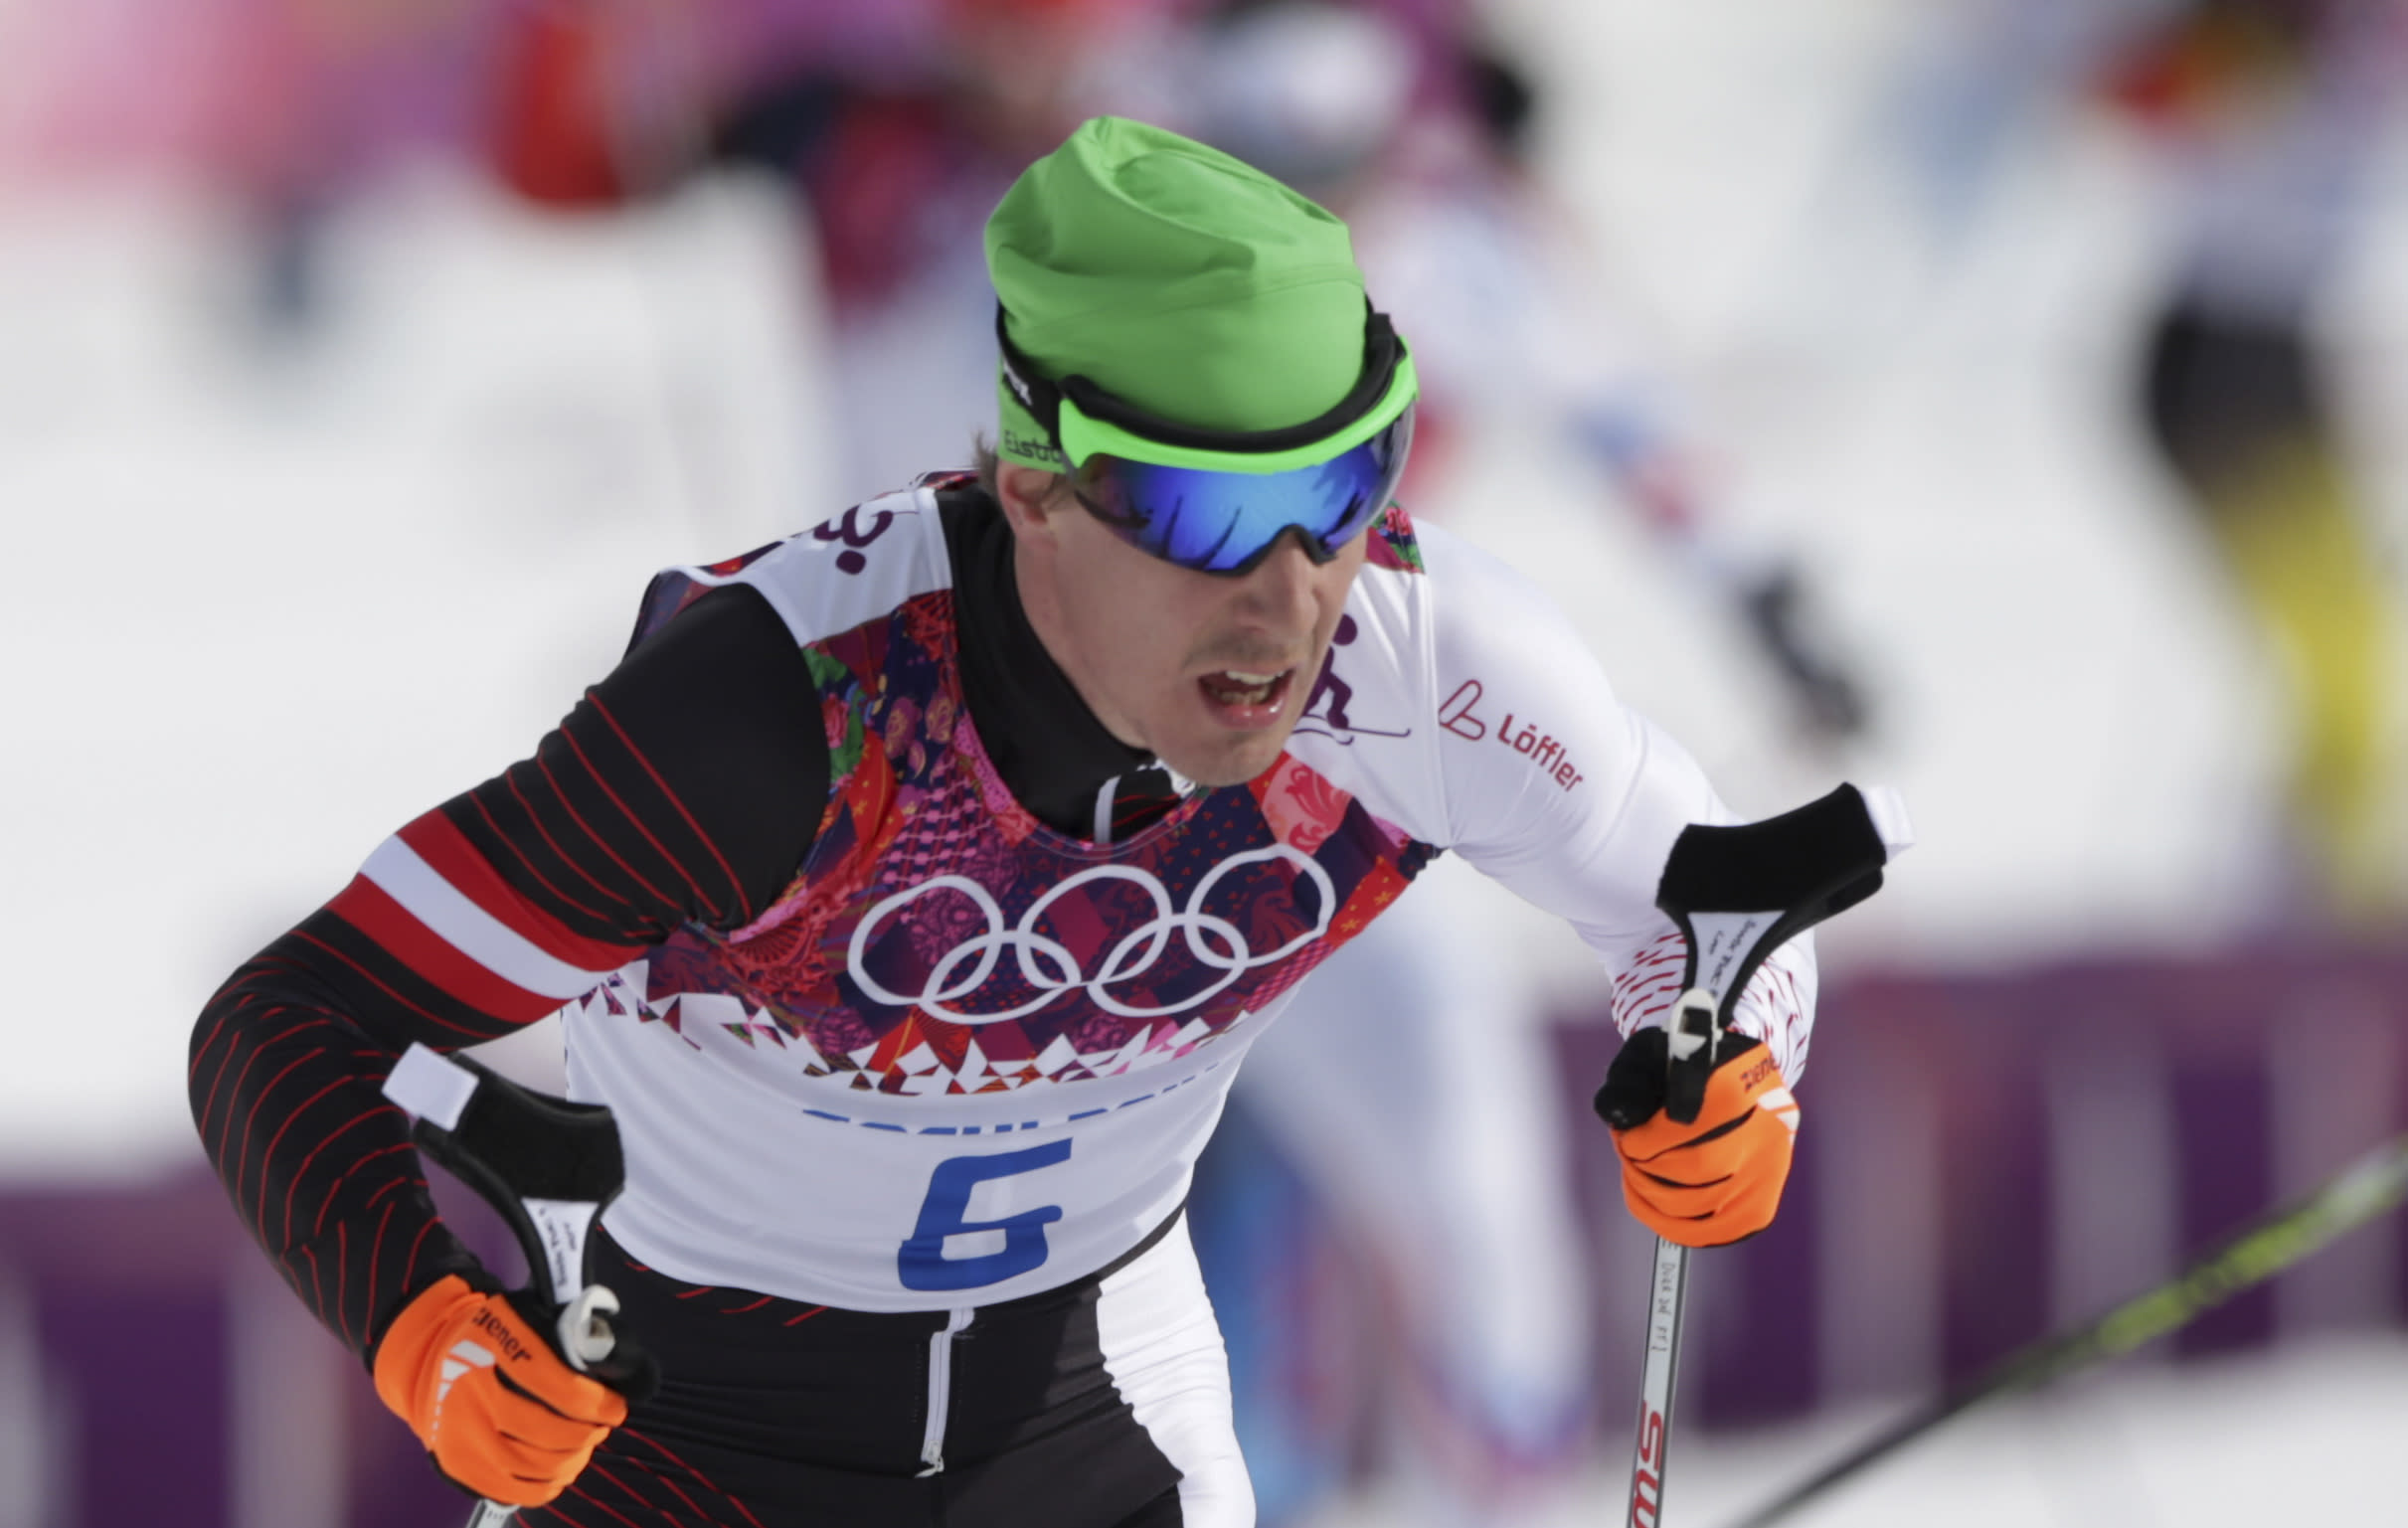 After 5th case, IOC says anti-doping program works